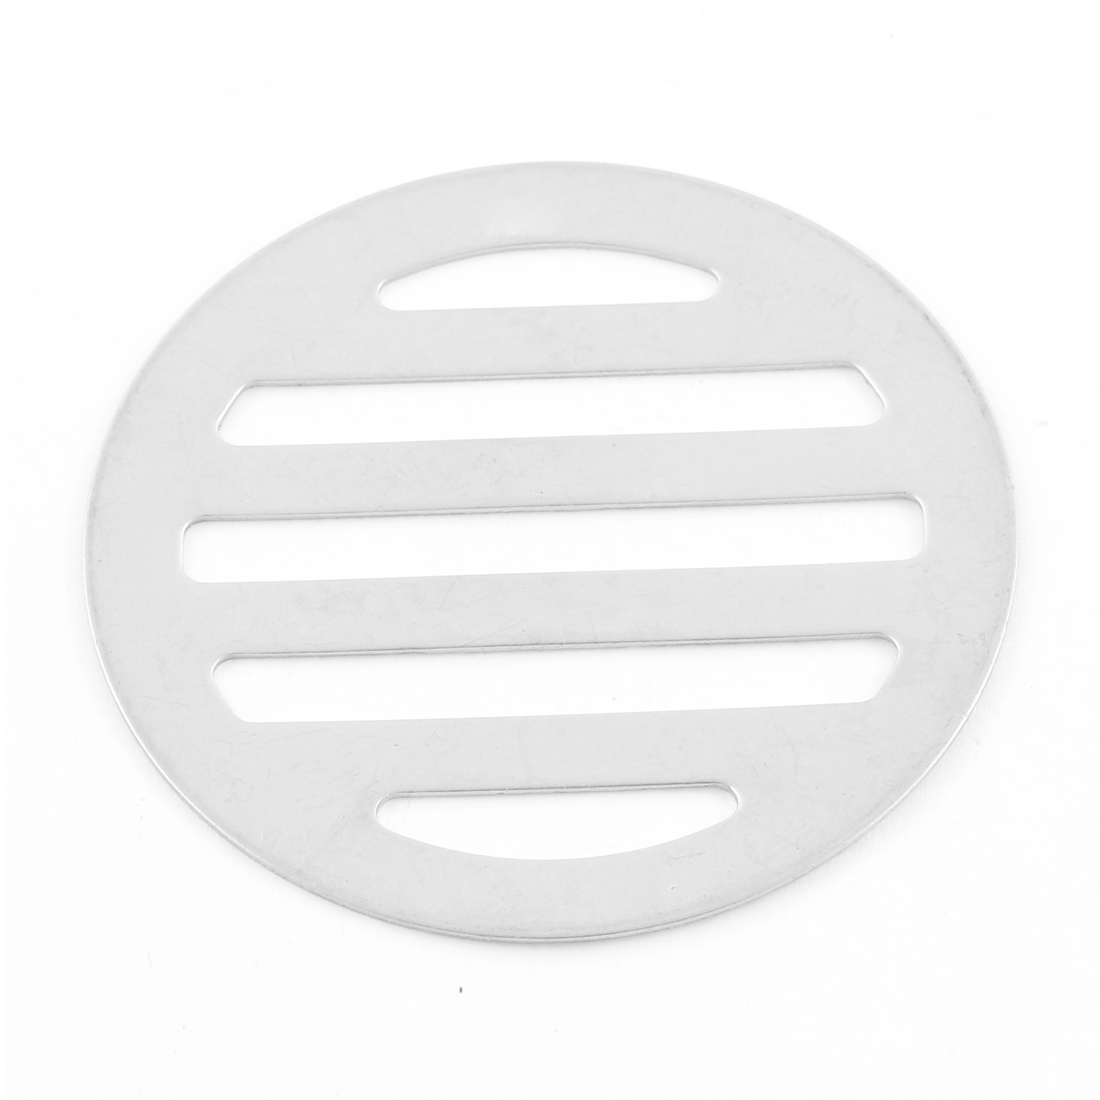 2.5 Inch Stainless Steel Floor Drain Strainer Cover Bath Sink Filter